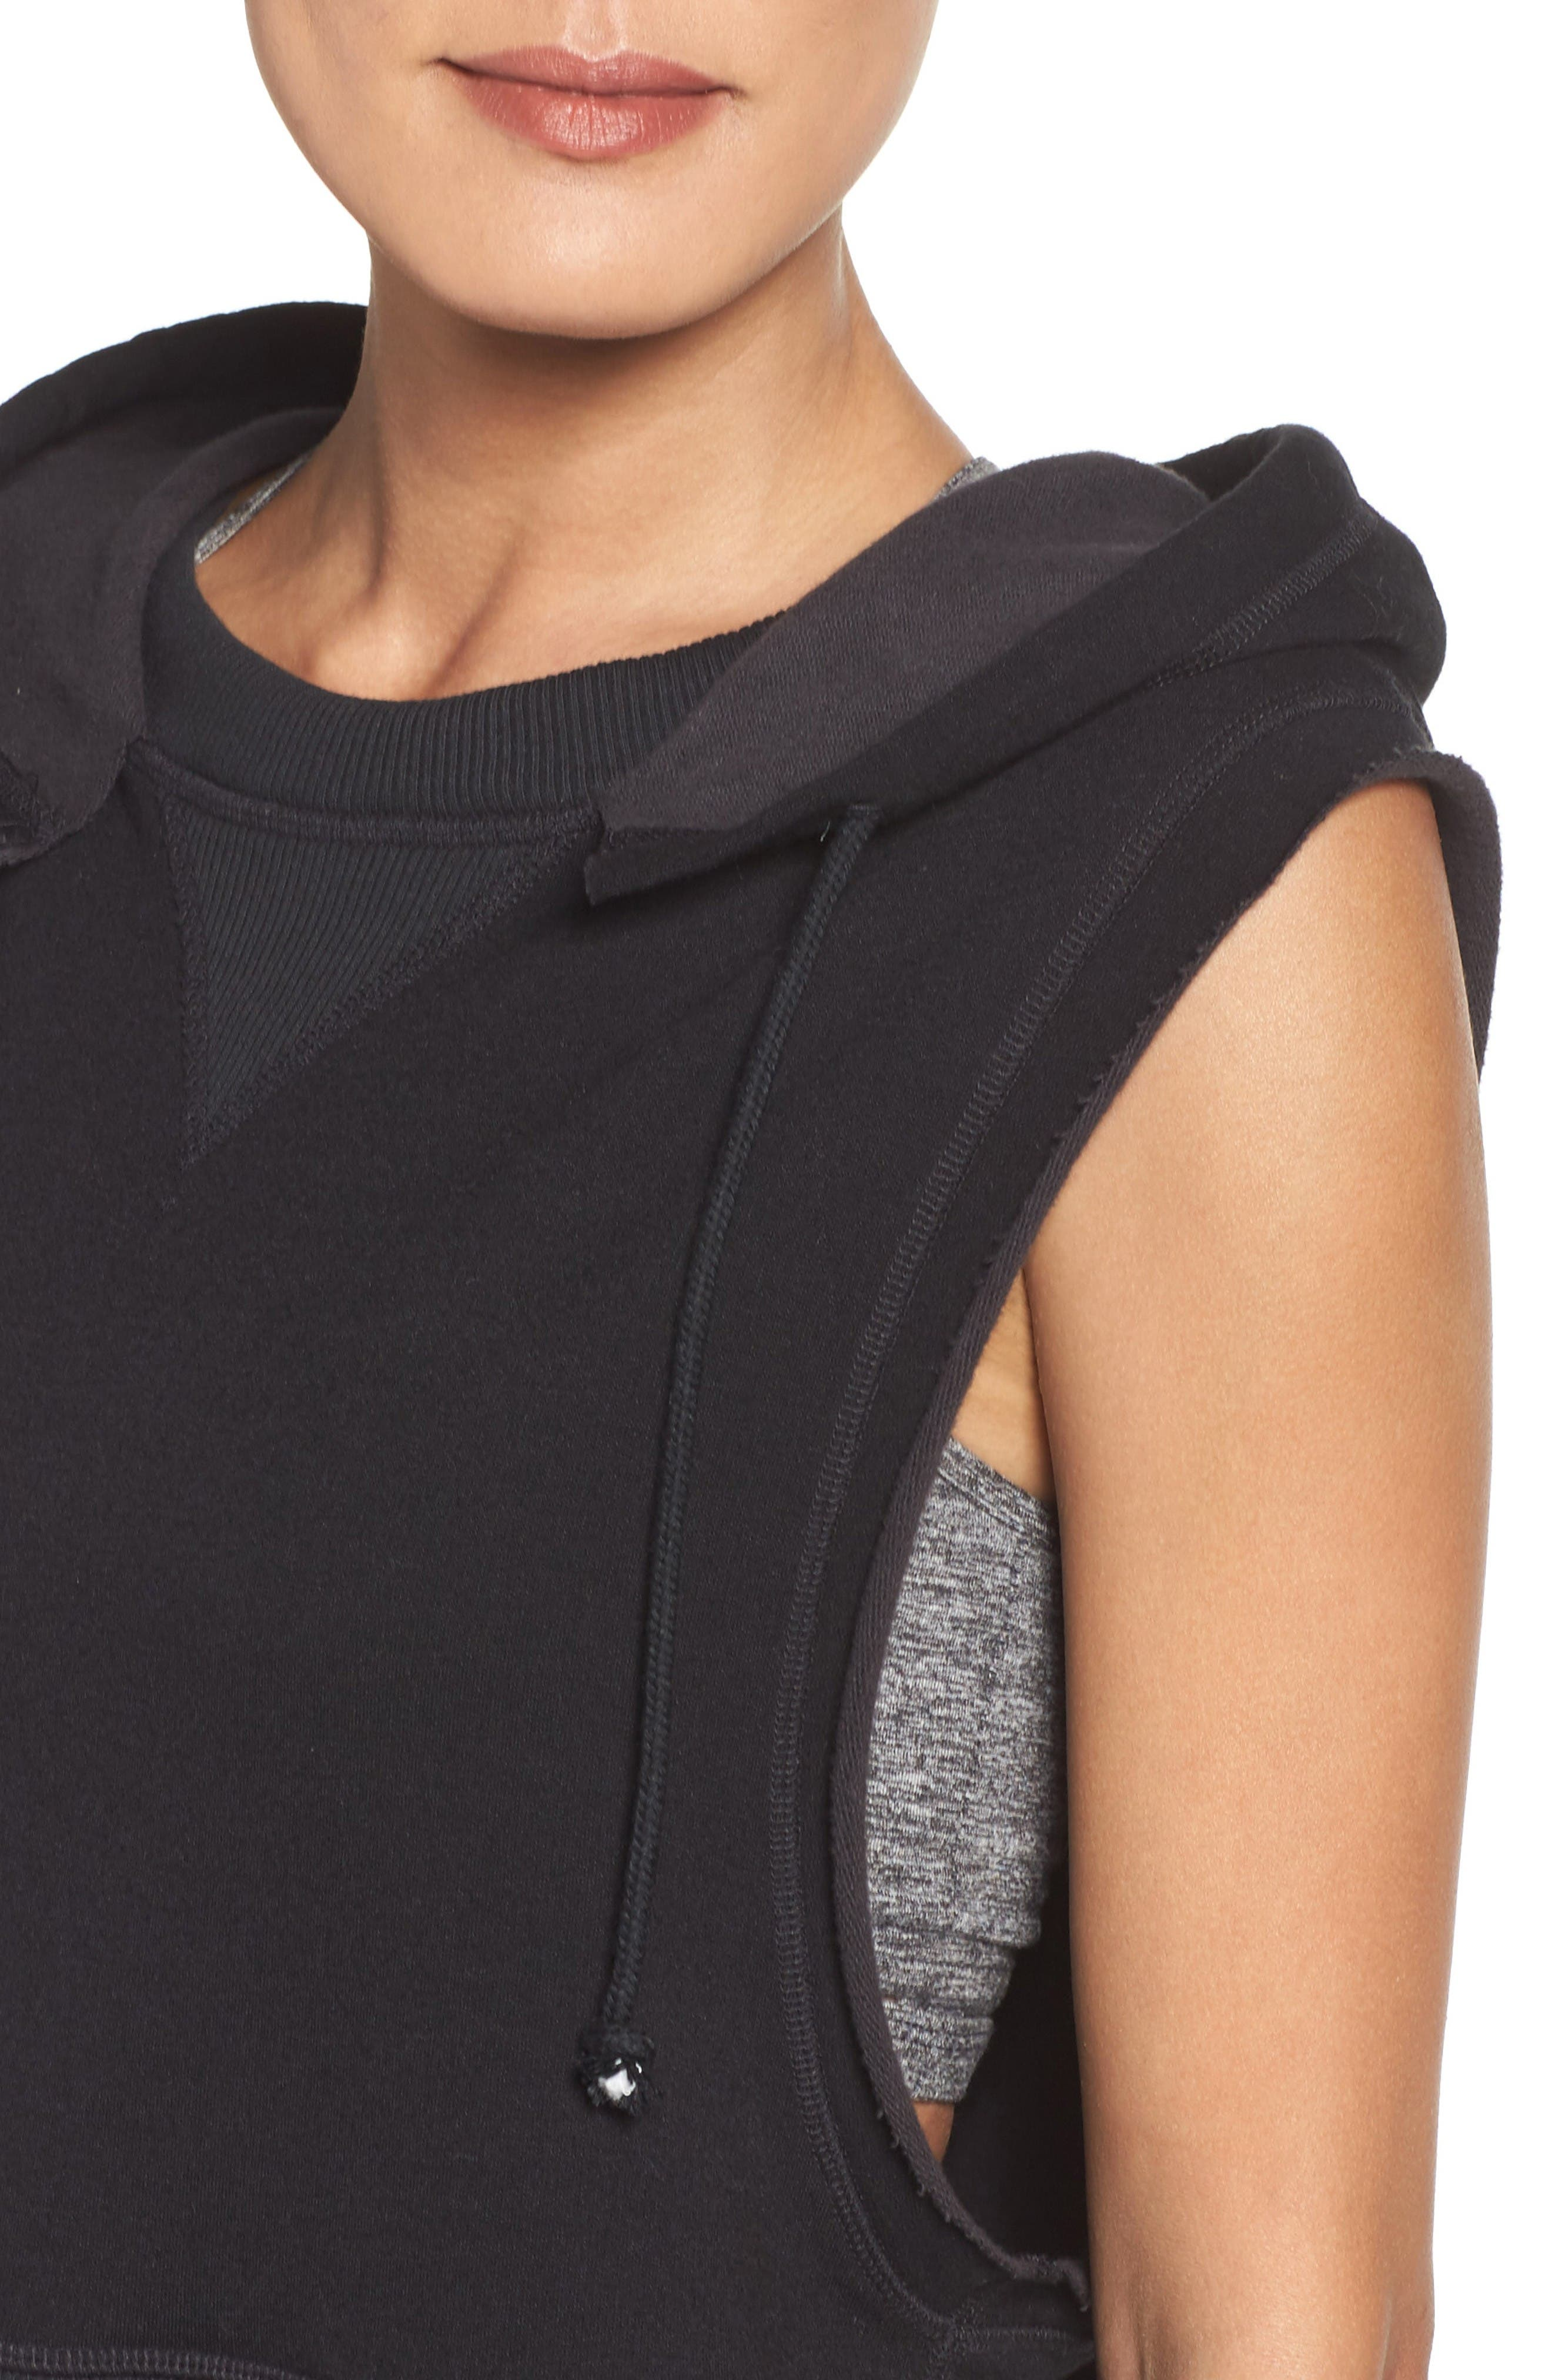 FP Movement Whitewater Hoodie,                             Alternate thumbnail 4, color,                             Black